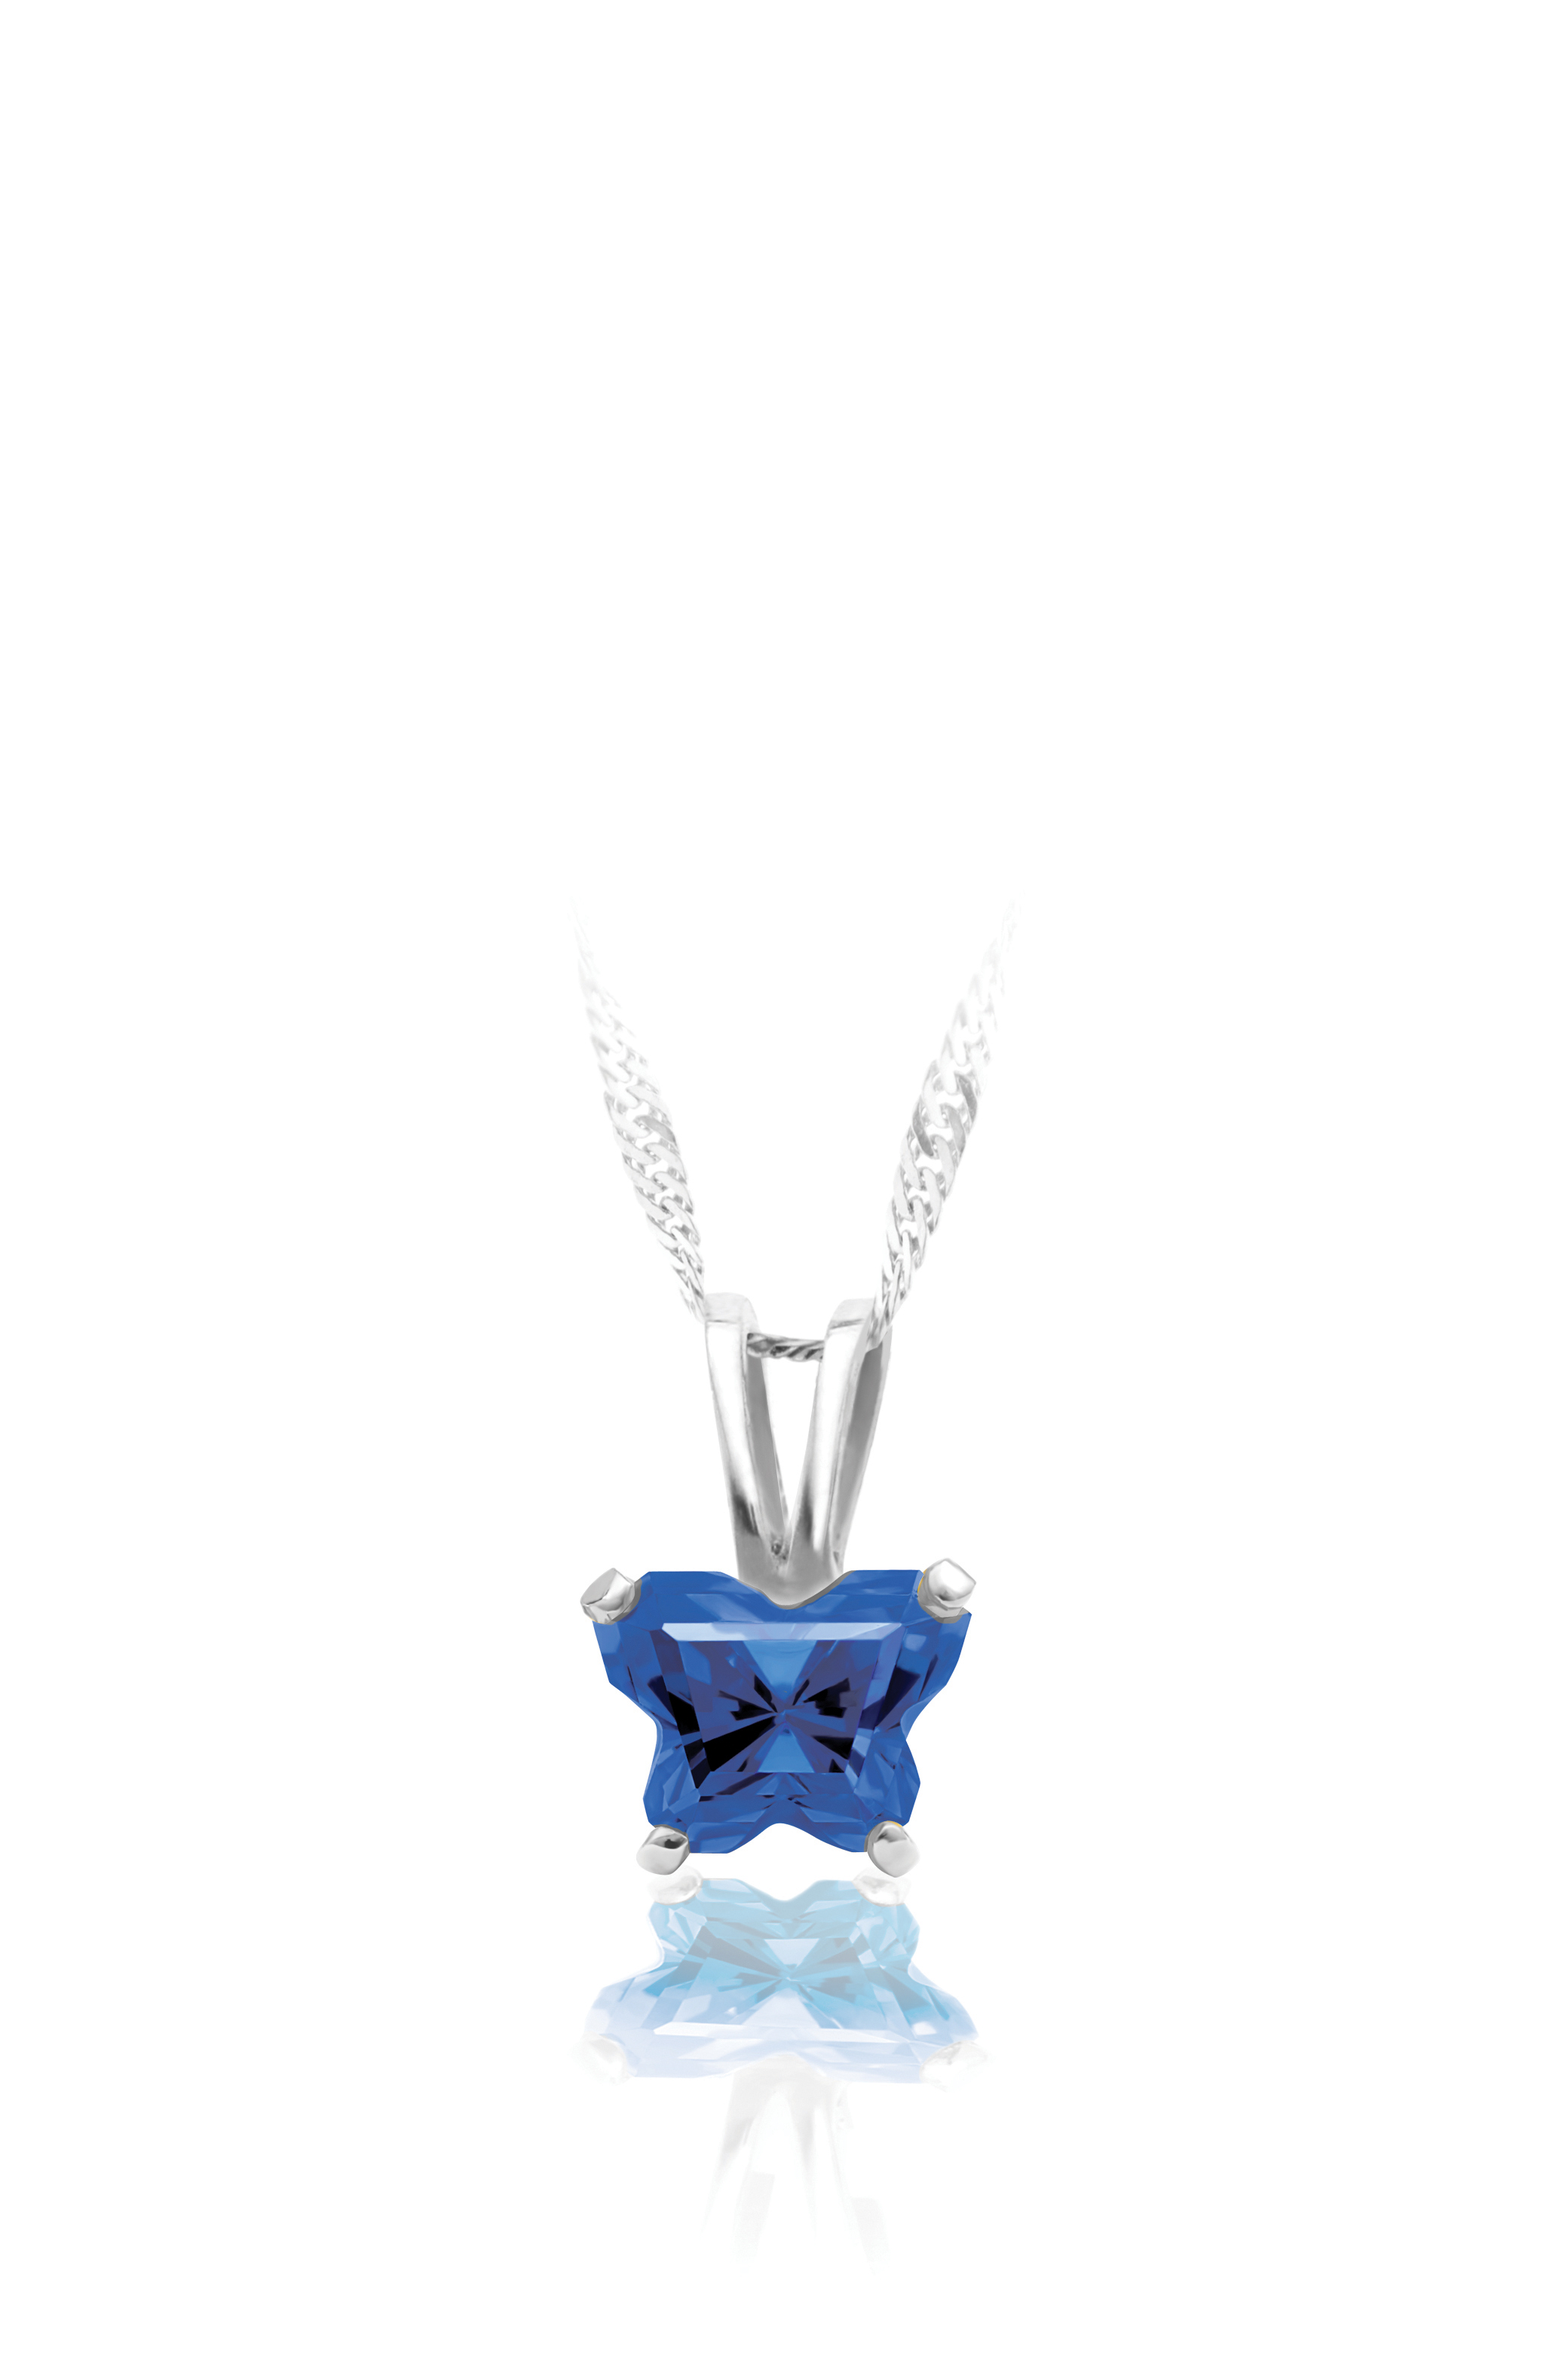 pendant for babies in sterling silver with navy blue cubic zirconia (month of September) - Chain included